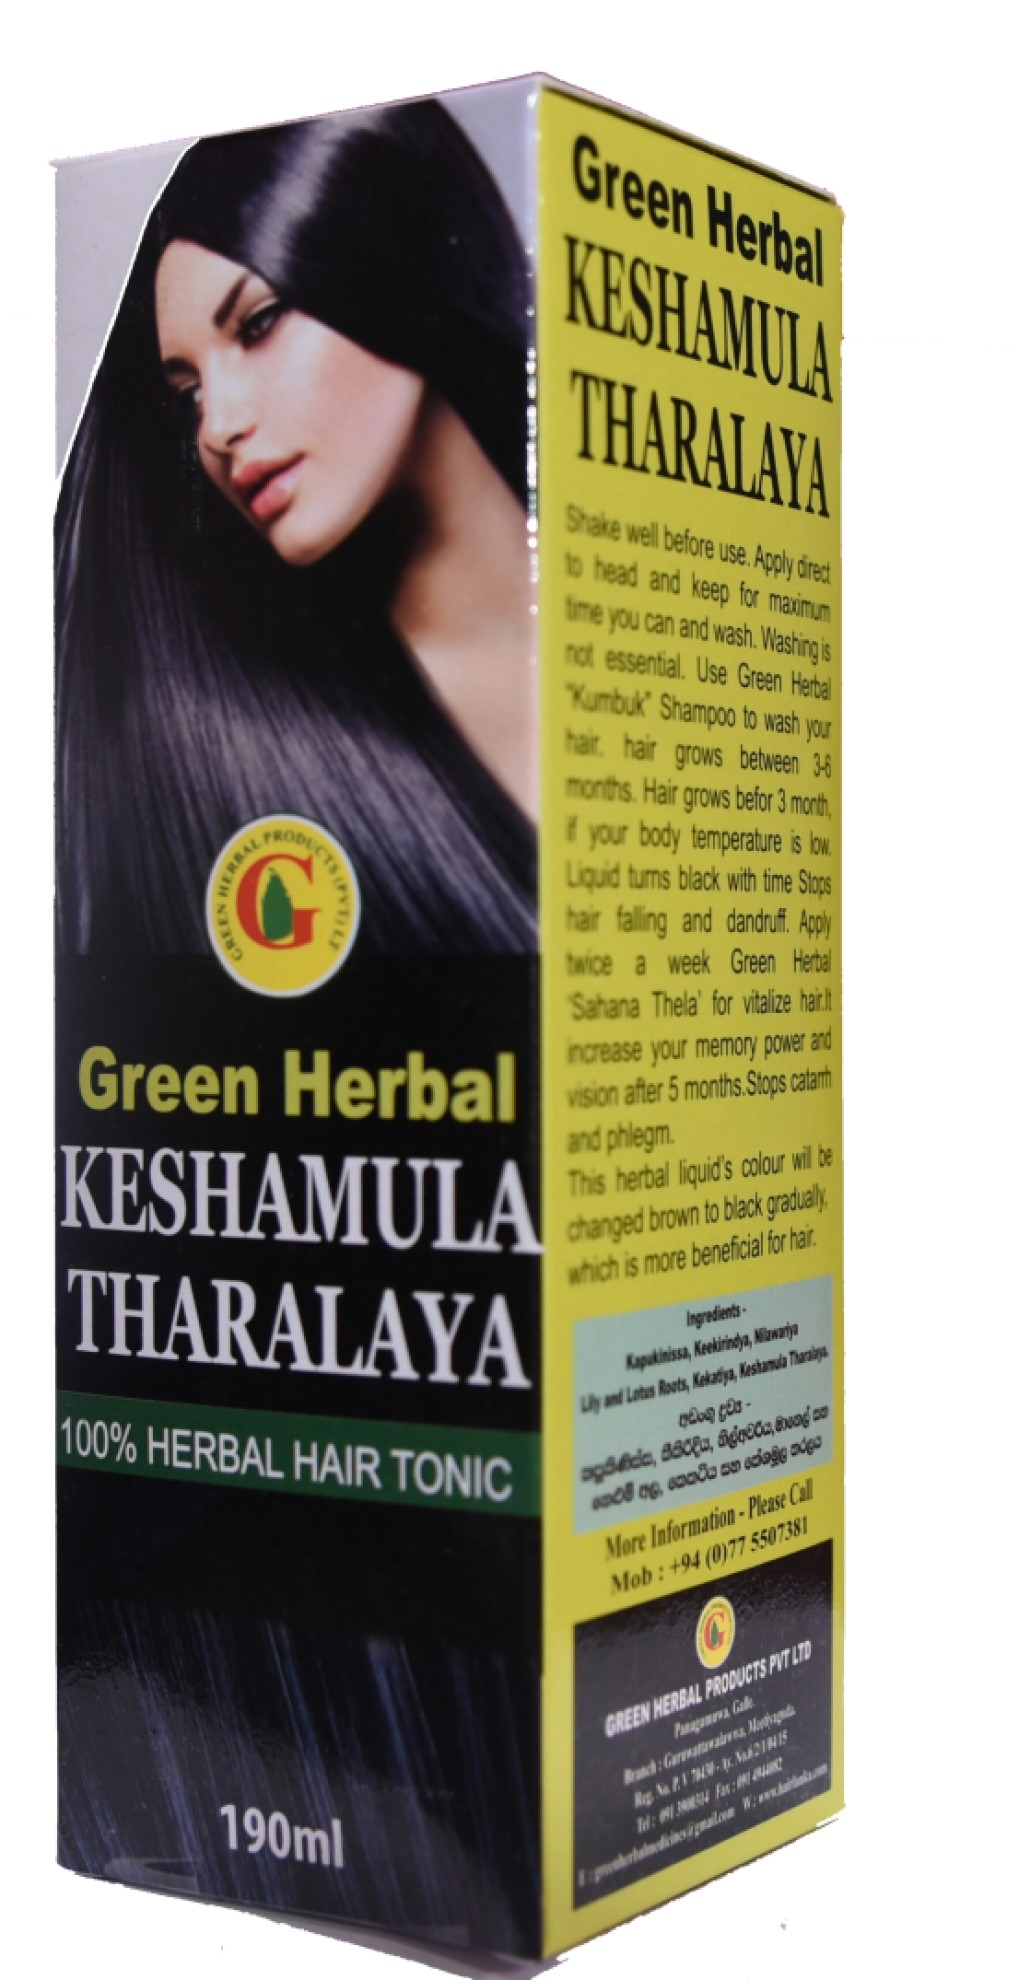 Keshamulatharalaya (Herbal Hair growing liquid)